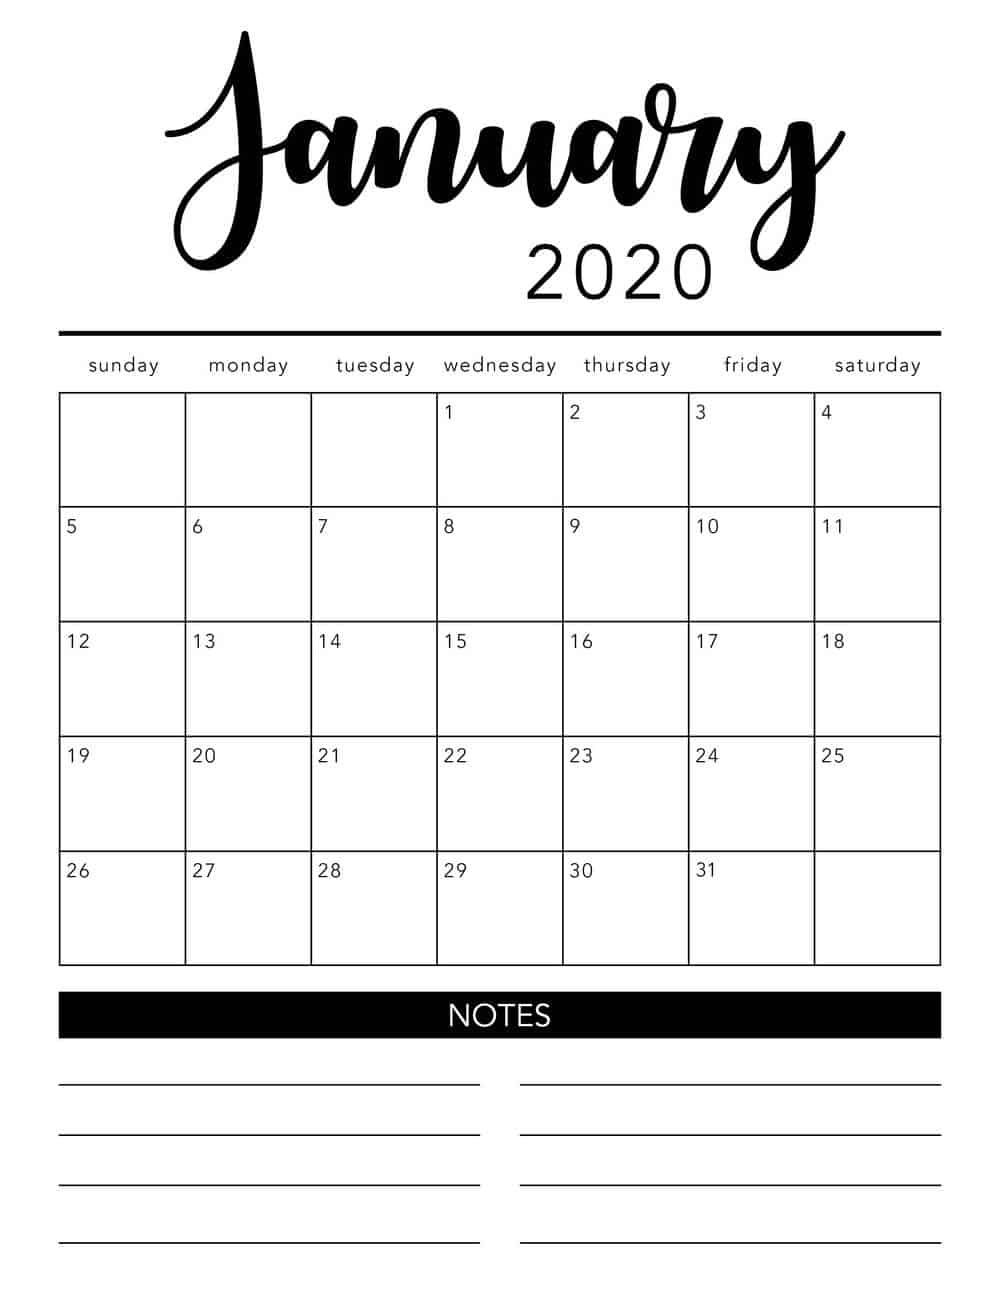 Free 2020 Printable Calendar Template (2 Colors!) - I Heart Extraordinary Calendar Template 2020 Printable Free Black And White